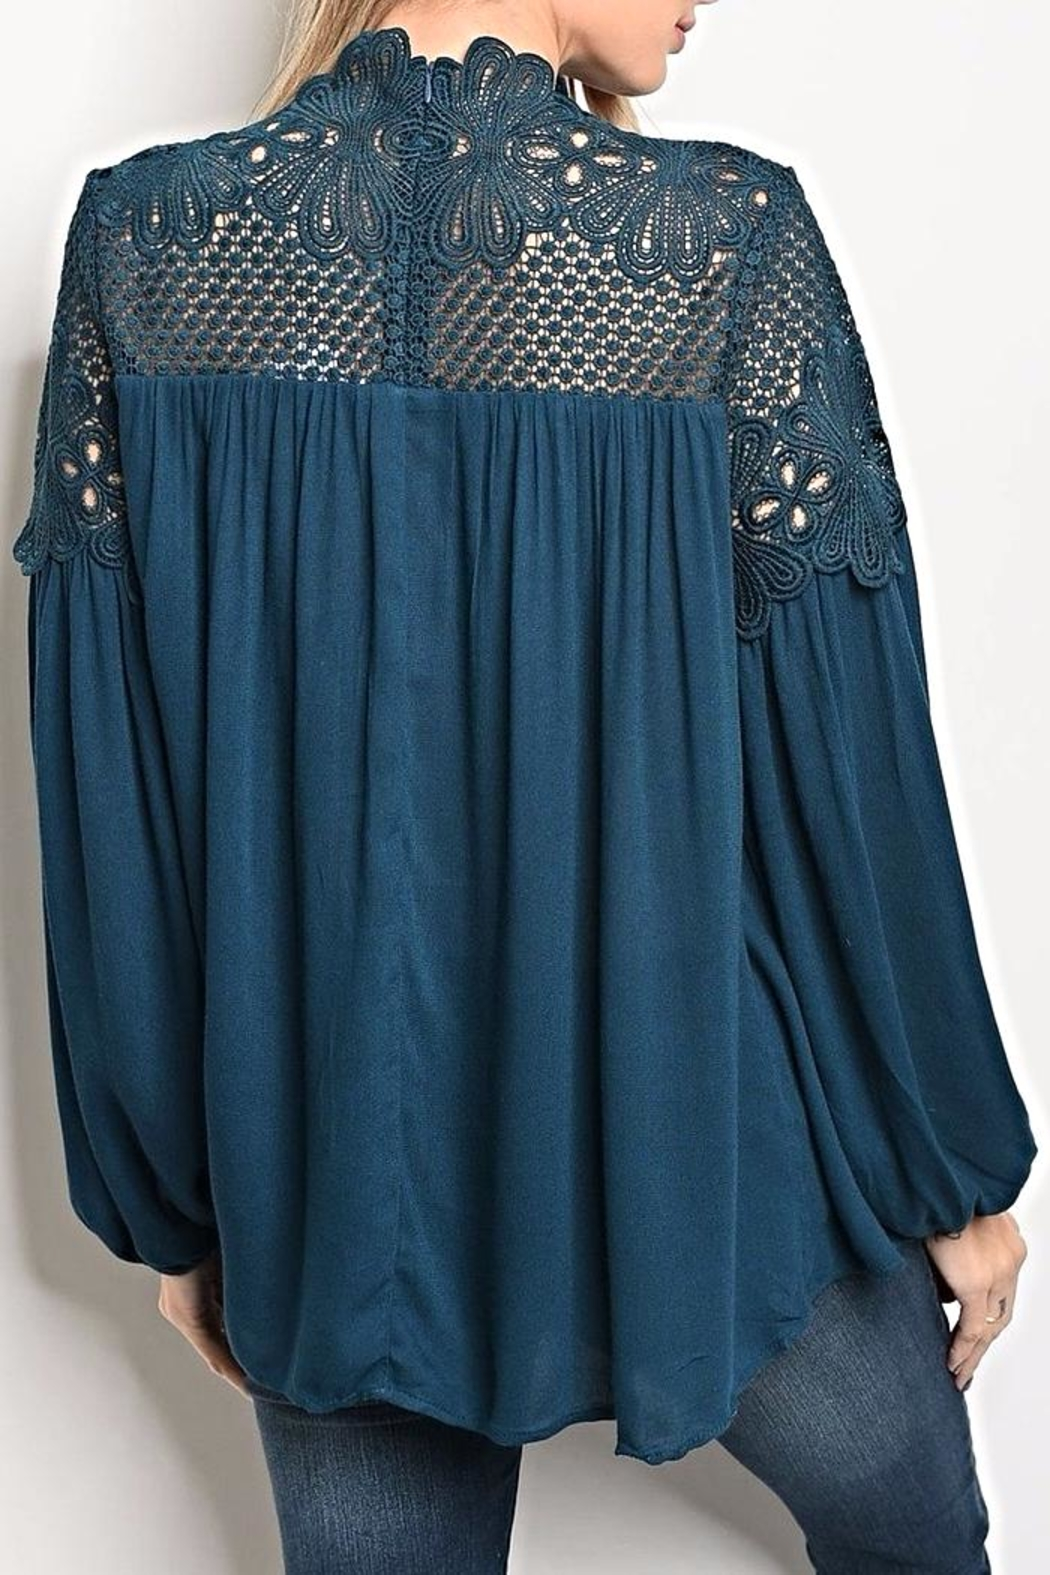 LoveRiche Teal Blouse - Front Full Image